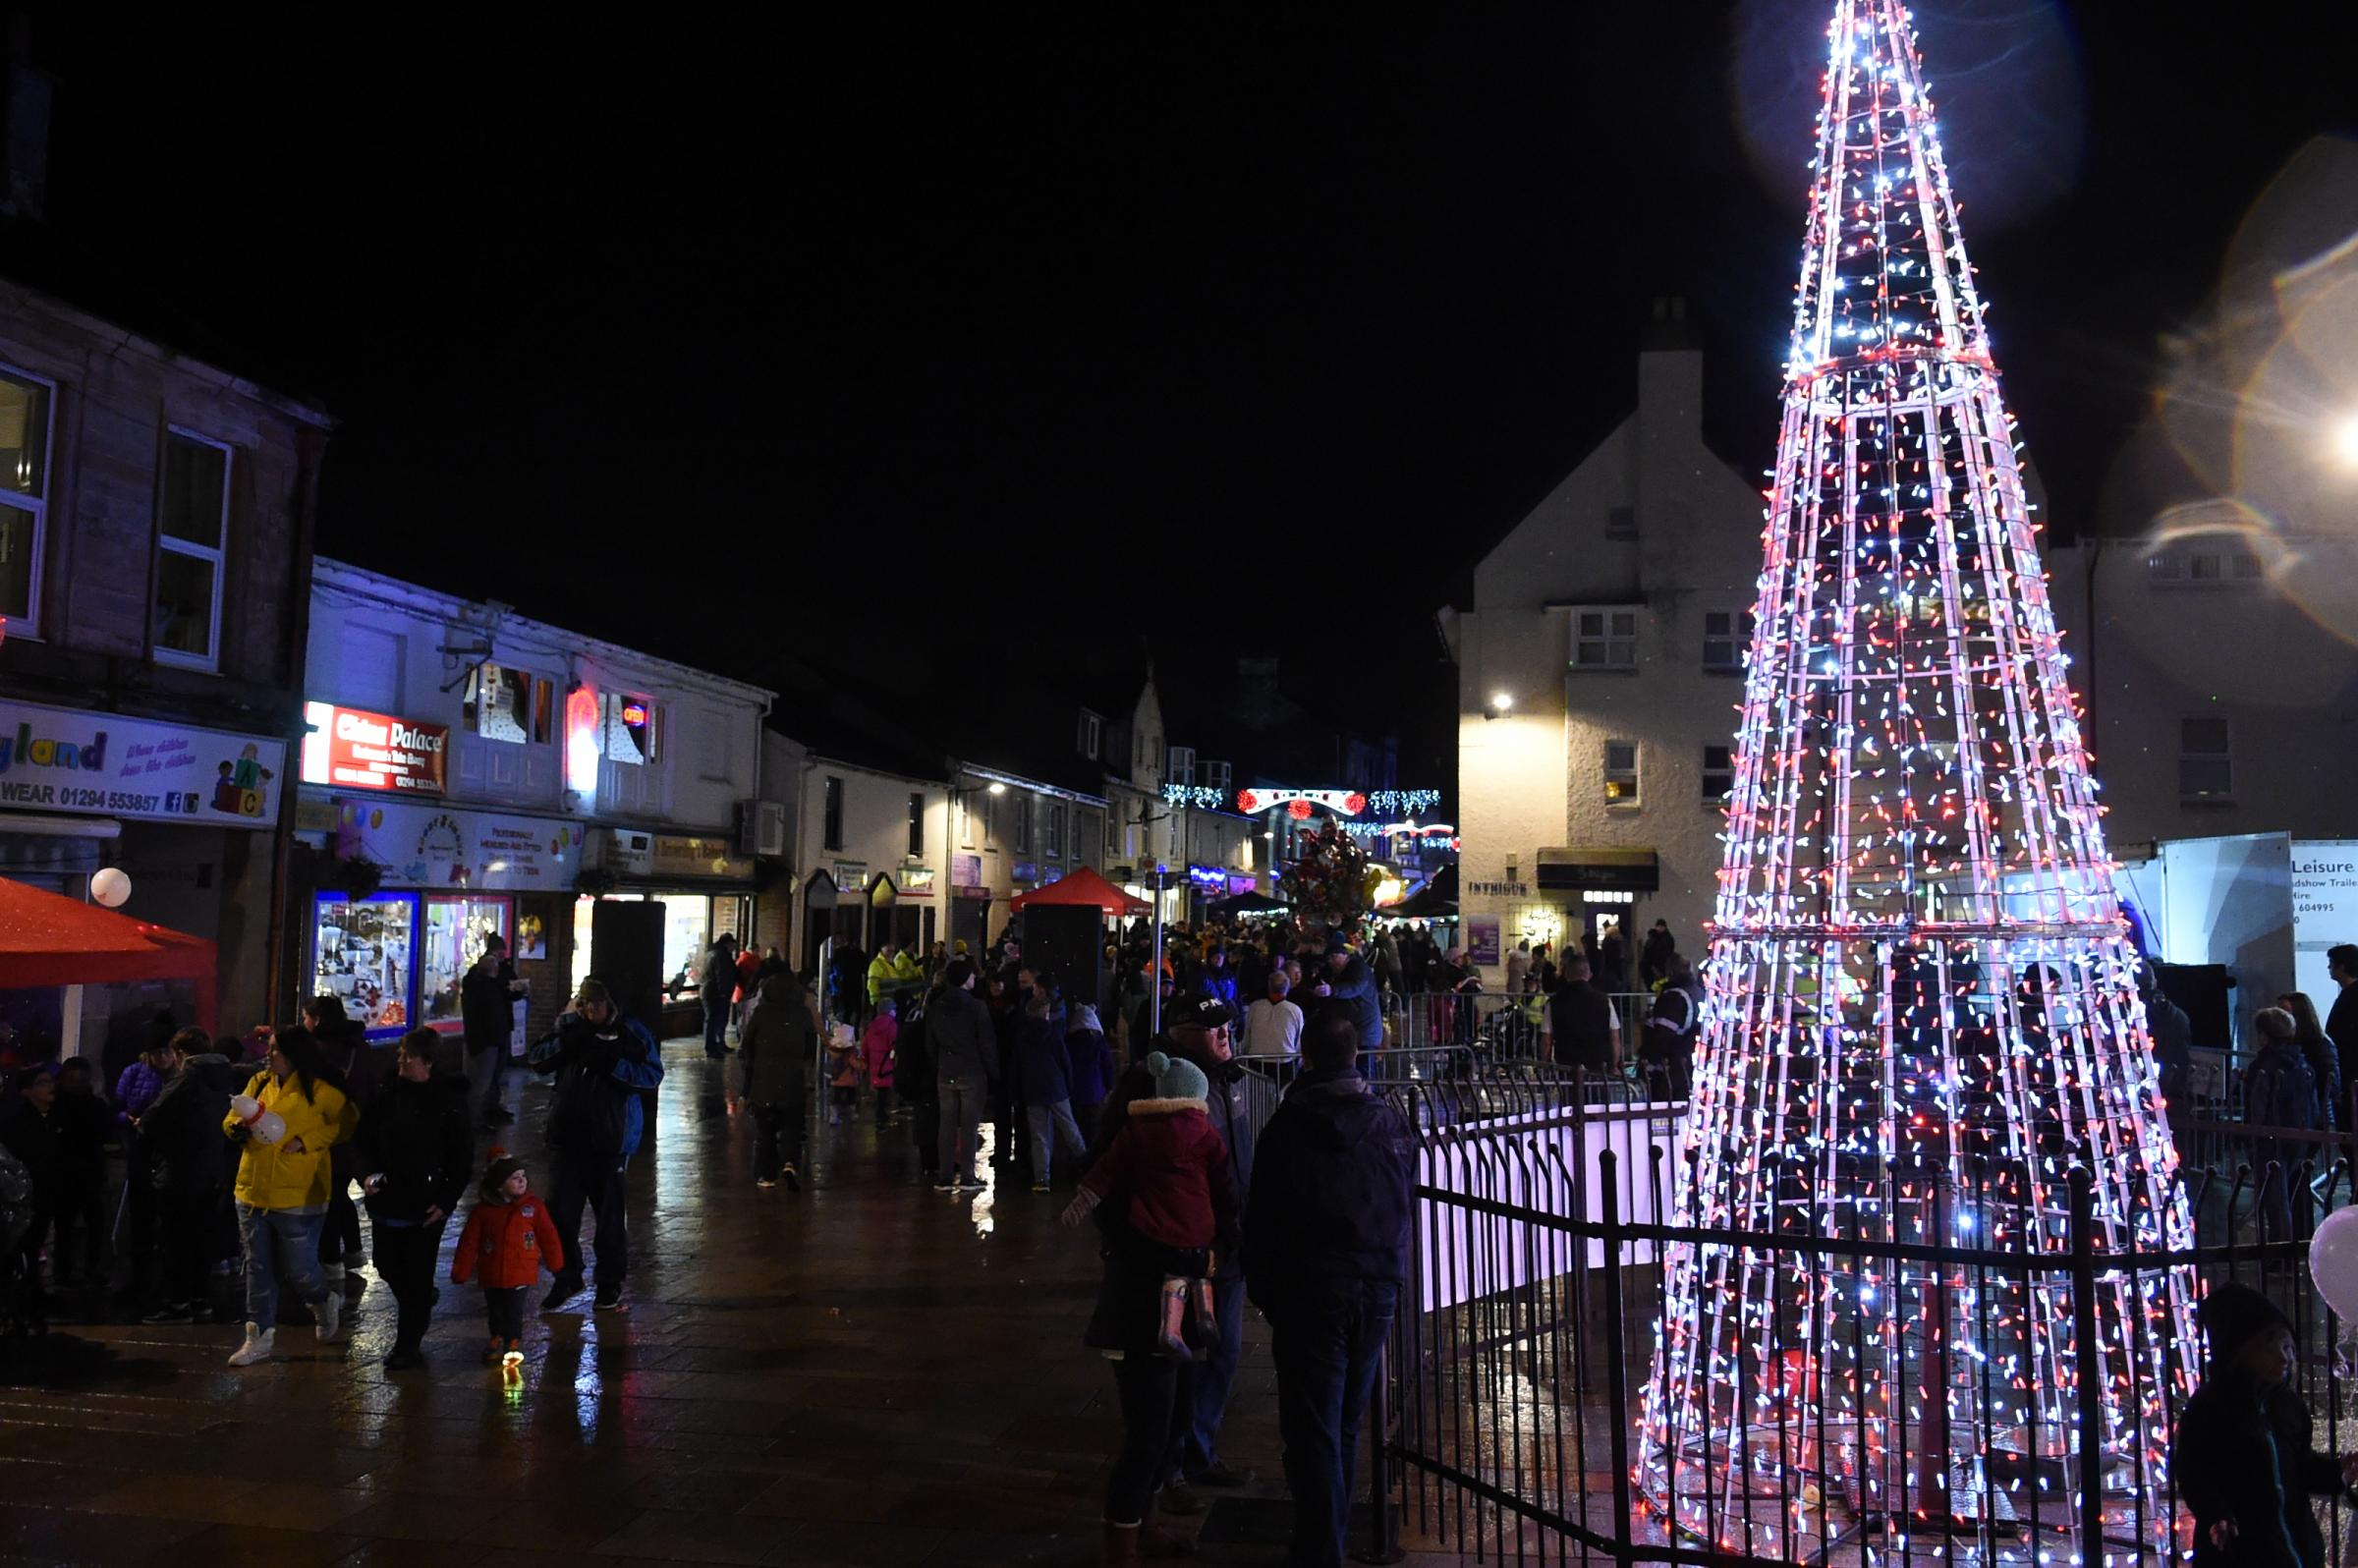 Vote for local hero to switch on Kilwinning's Christmas lights